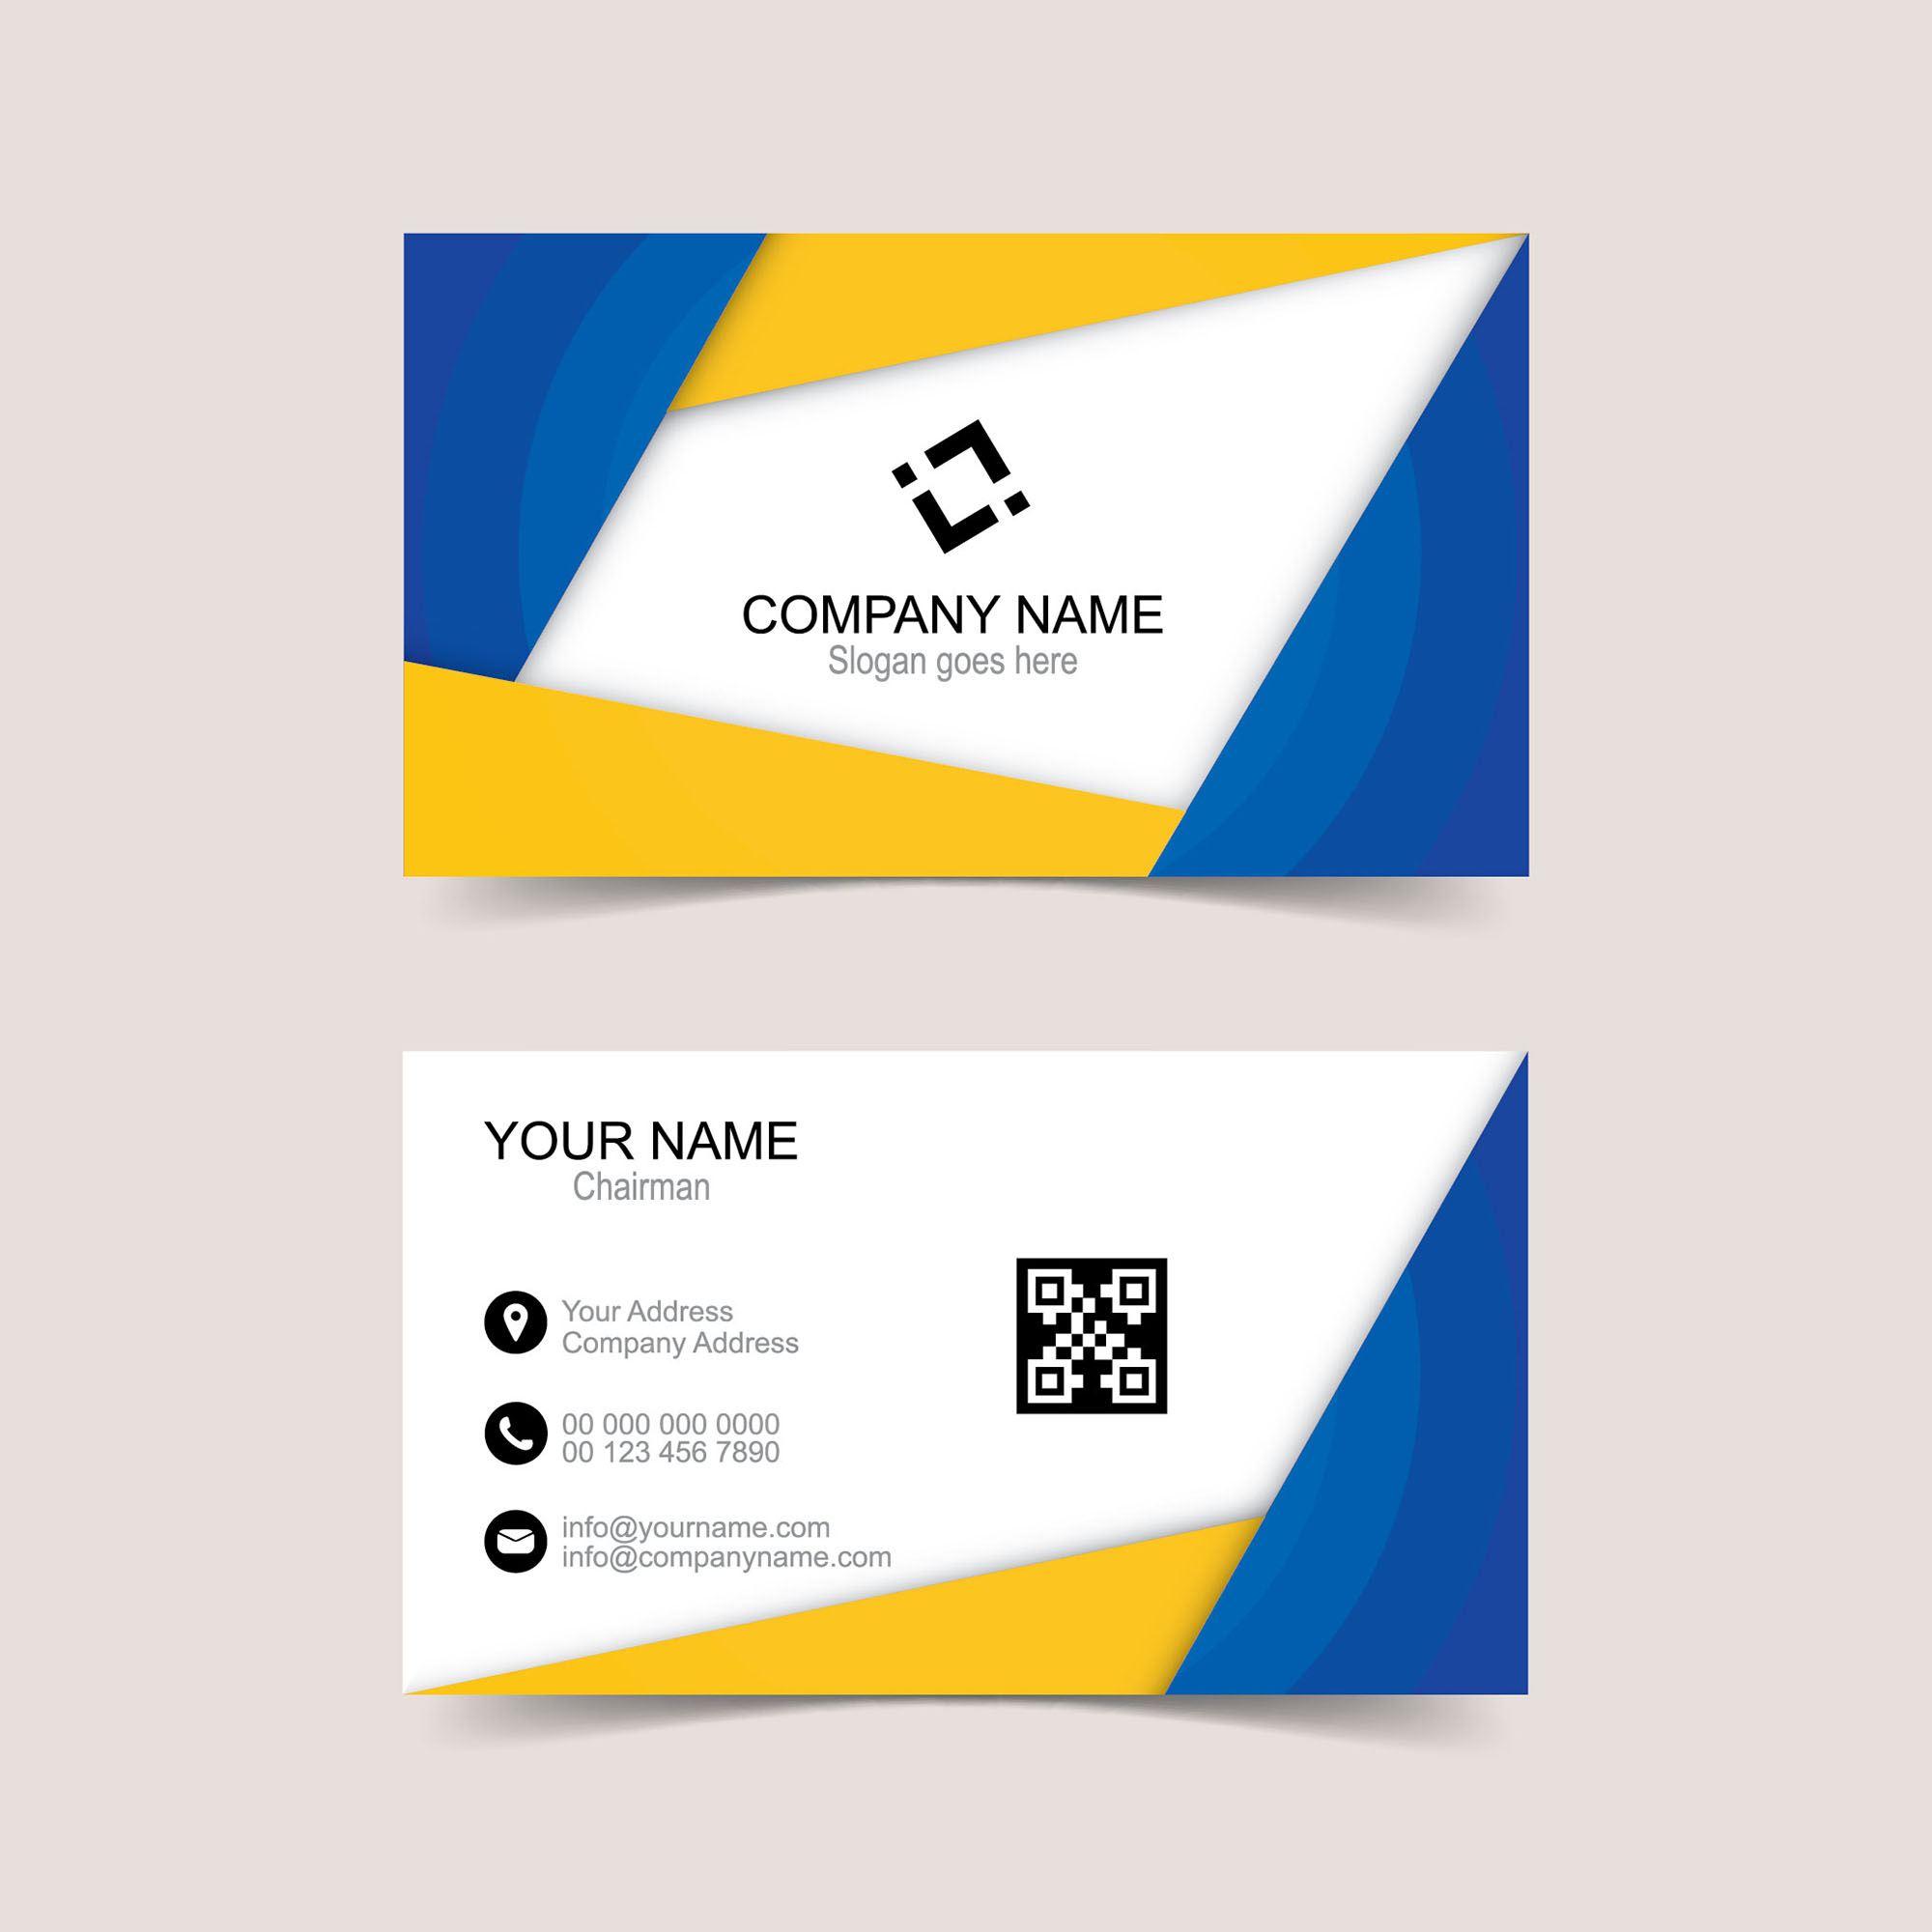 Vector creative business card template free download wisxi business card business cards business card design business card template design templates reheart Choice Image